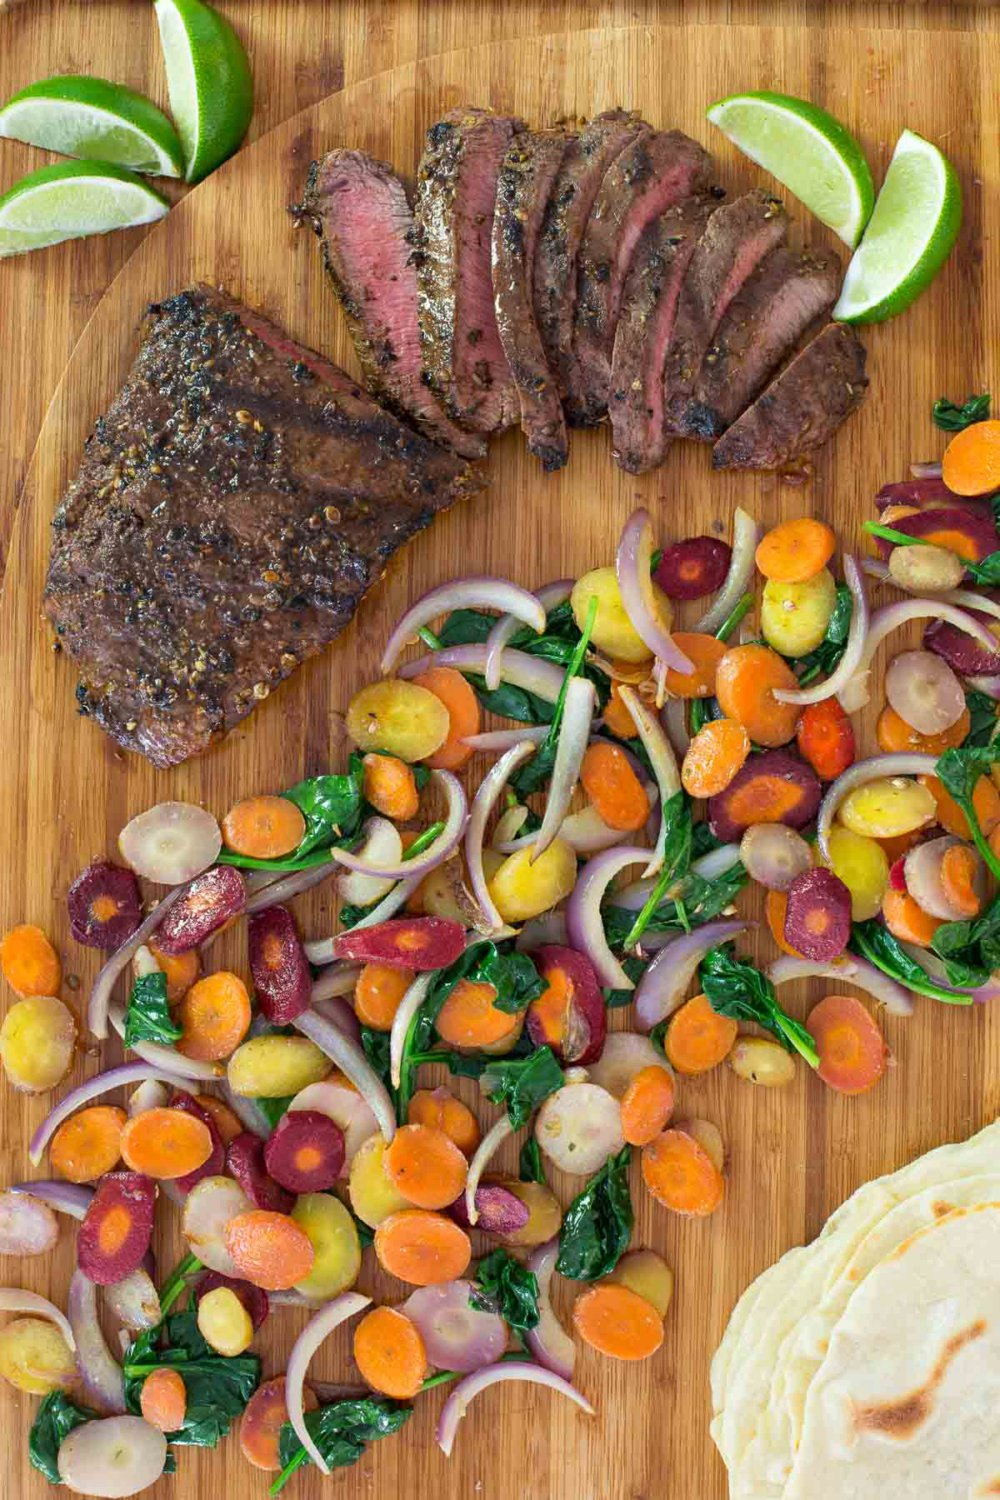 Grilled Mexican Flat Iron Steak with Rainbow Carrots